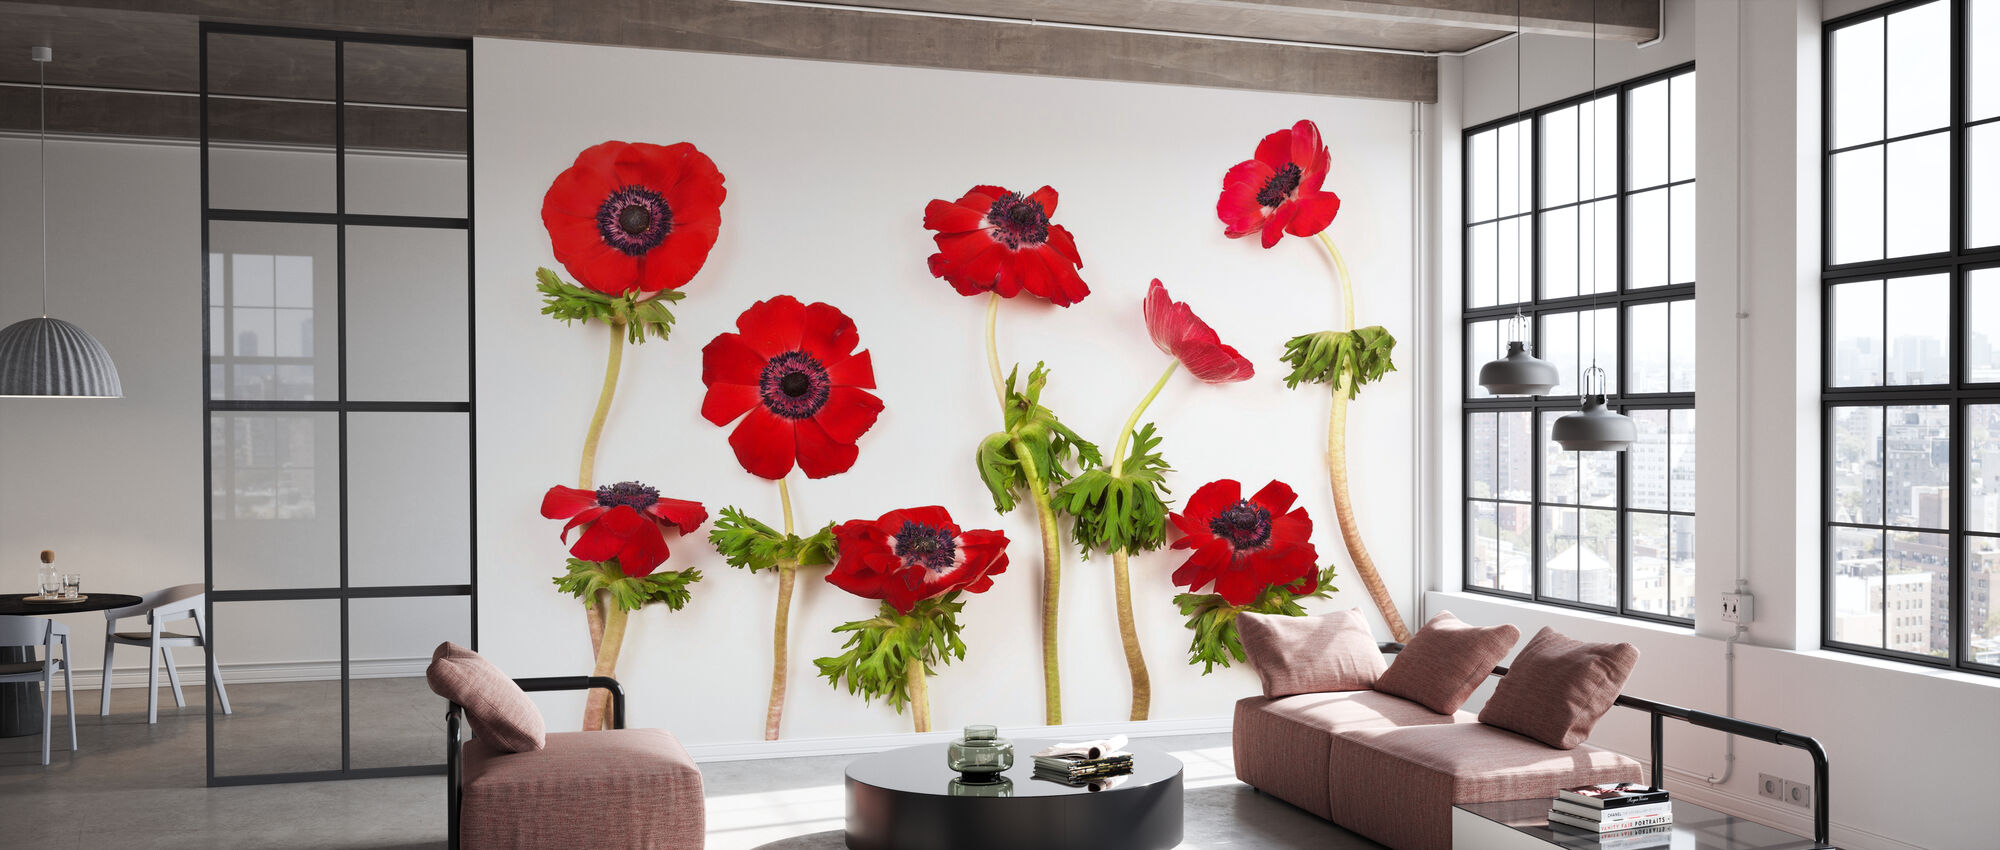 Red Anemons - Wallpaper - Office